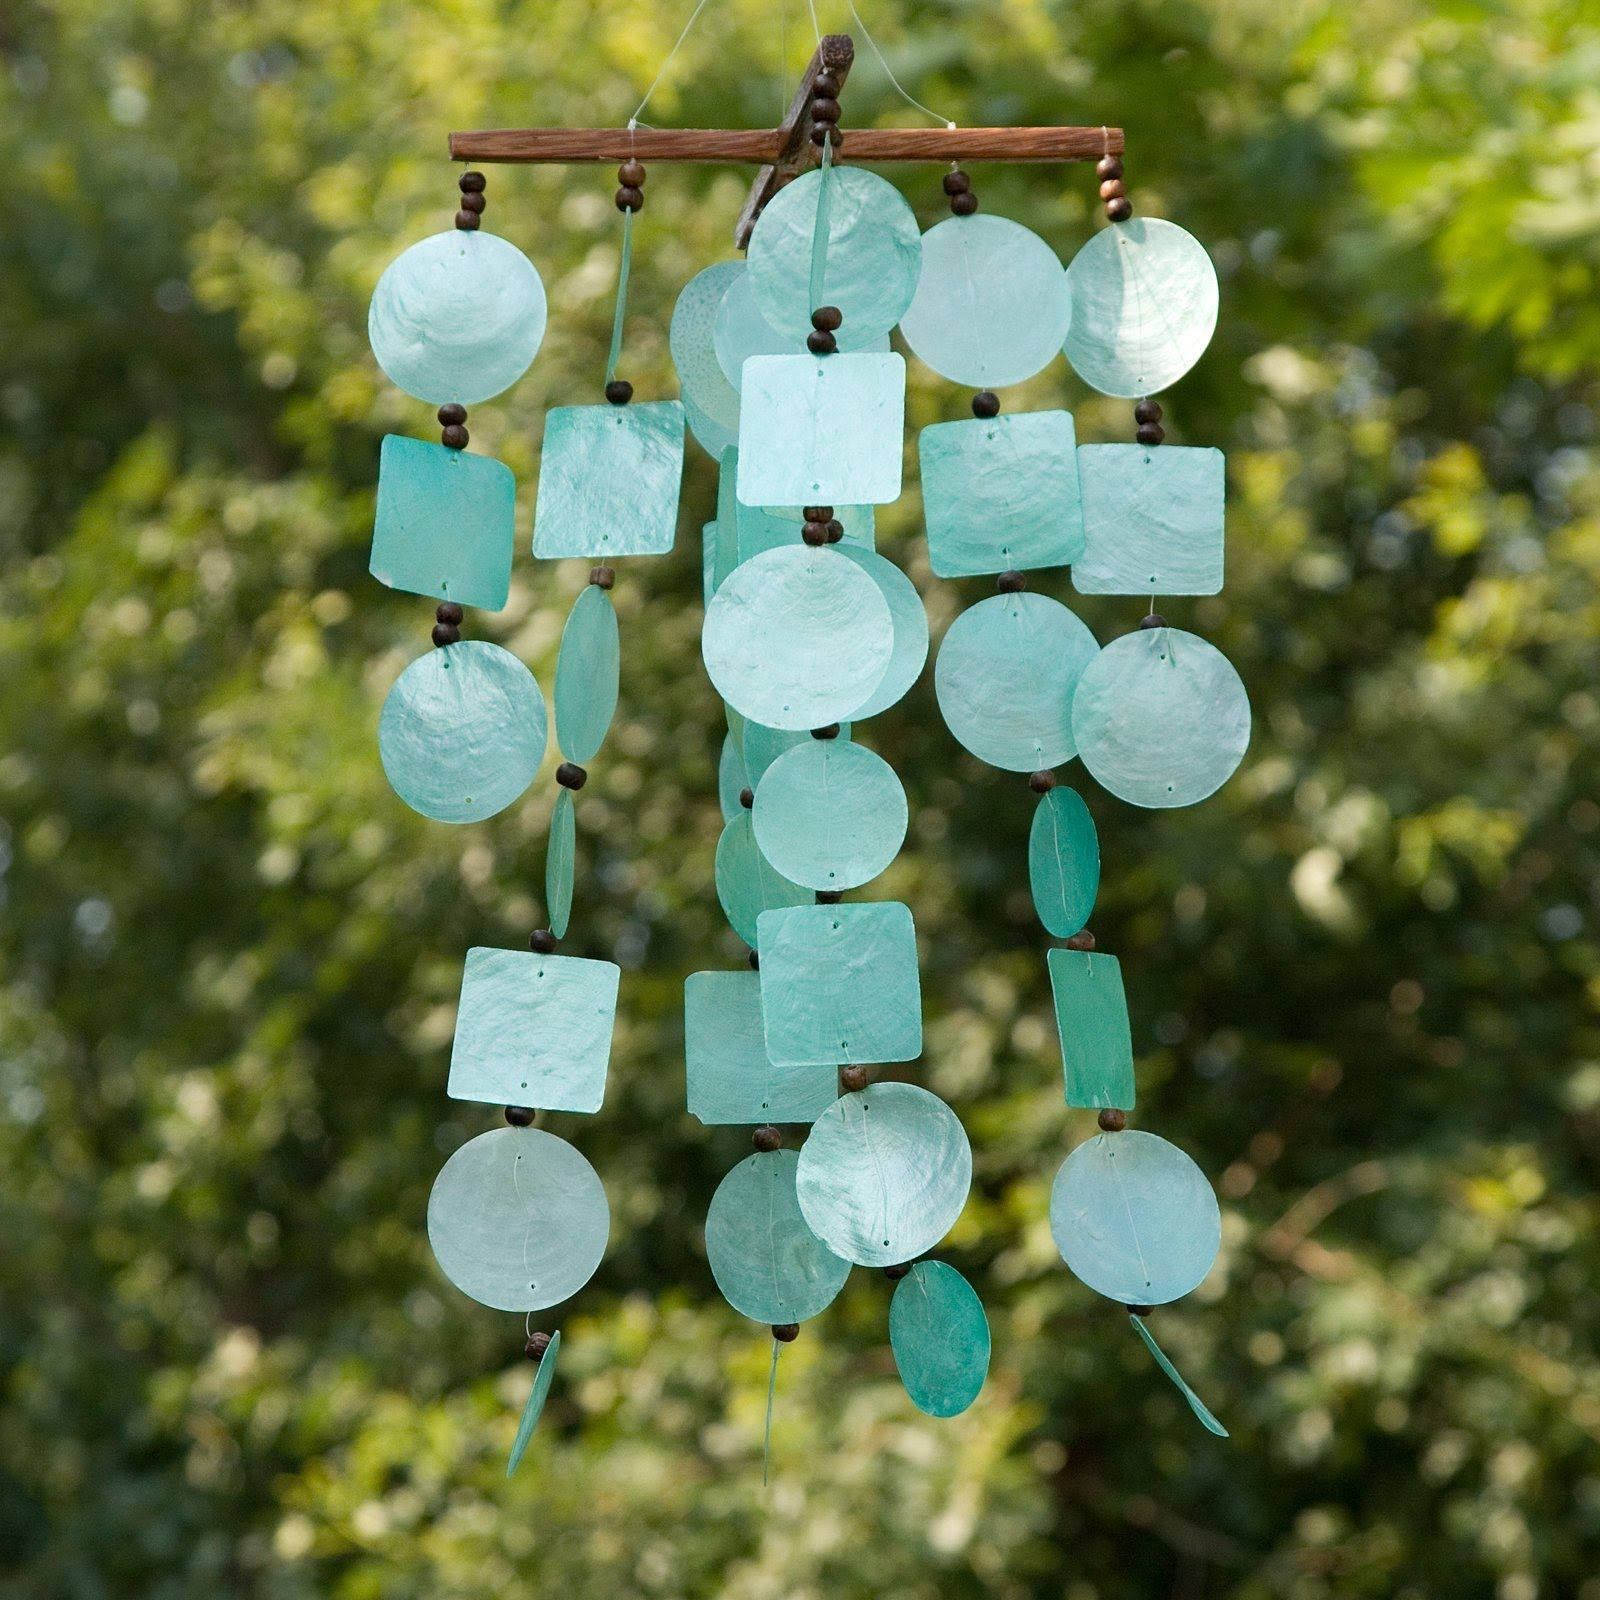 How to make your own DIY wind chimes + ANNOUNCEMENT - YouTube